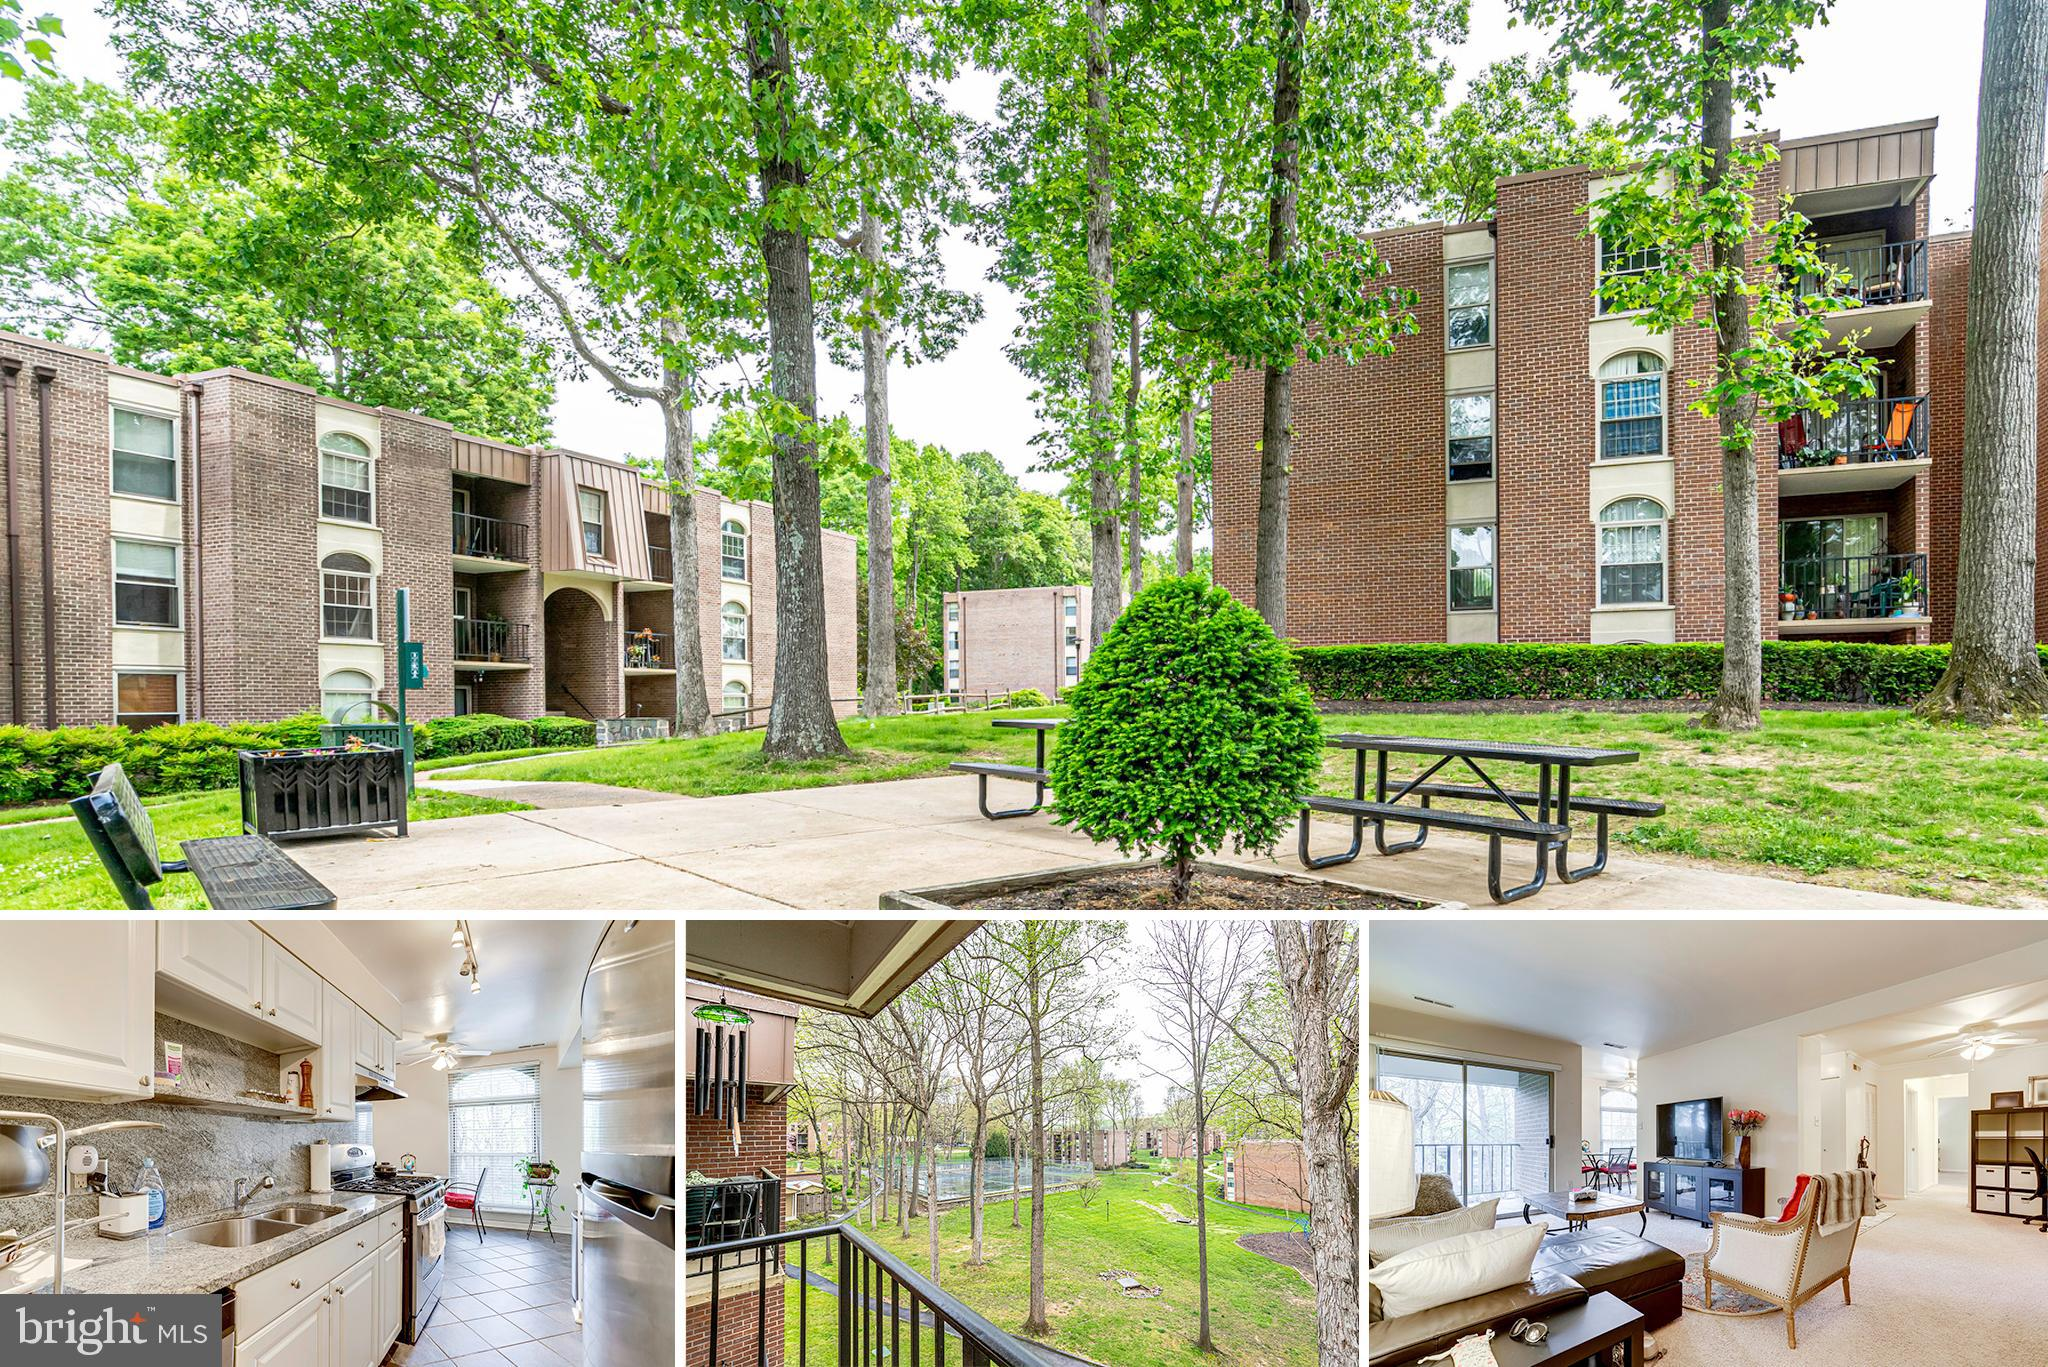 Wonderful updated large top floor 2br/1.5 ba condo at Woodburn Village. Updates throughout like kitchen cabinets, granite countertops, appliances, bathroom vanities etc.   Just steps from Fairfax Hospital - minutes from I-495, I-66 and Tysons Corner. Convenient to bus and metro, Mosaic etc.  Woodburn Village is a garden community with great common grounds, picnic areas, sports courts and outdoor pool. The condo fee includes all utilities.  Laundry and extra storage in basement.